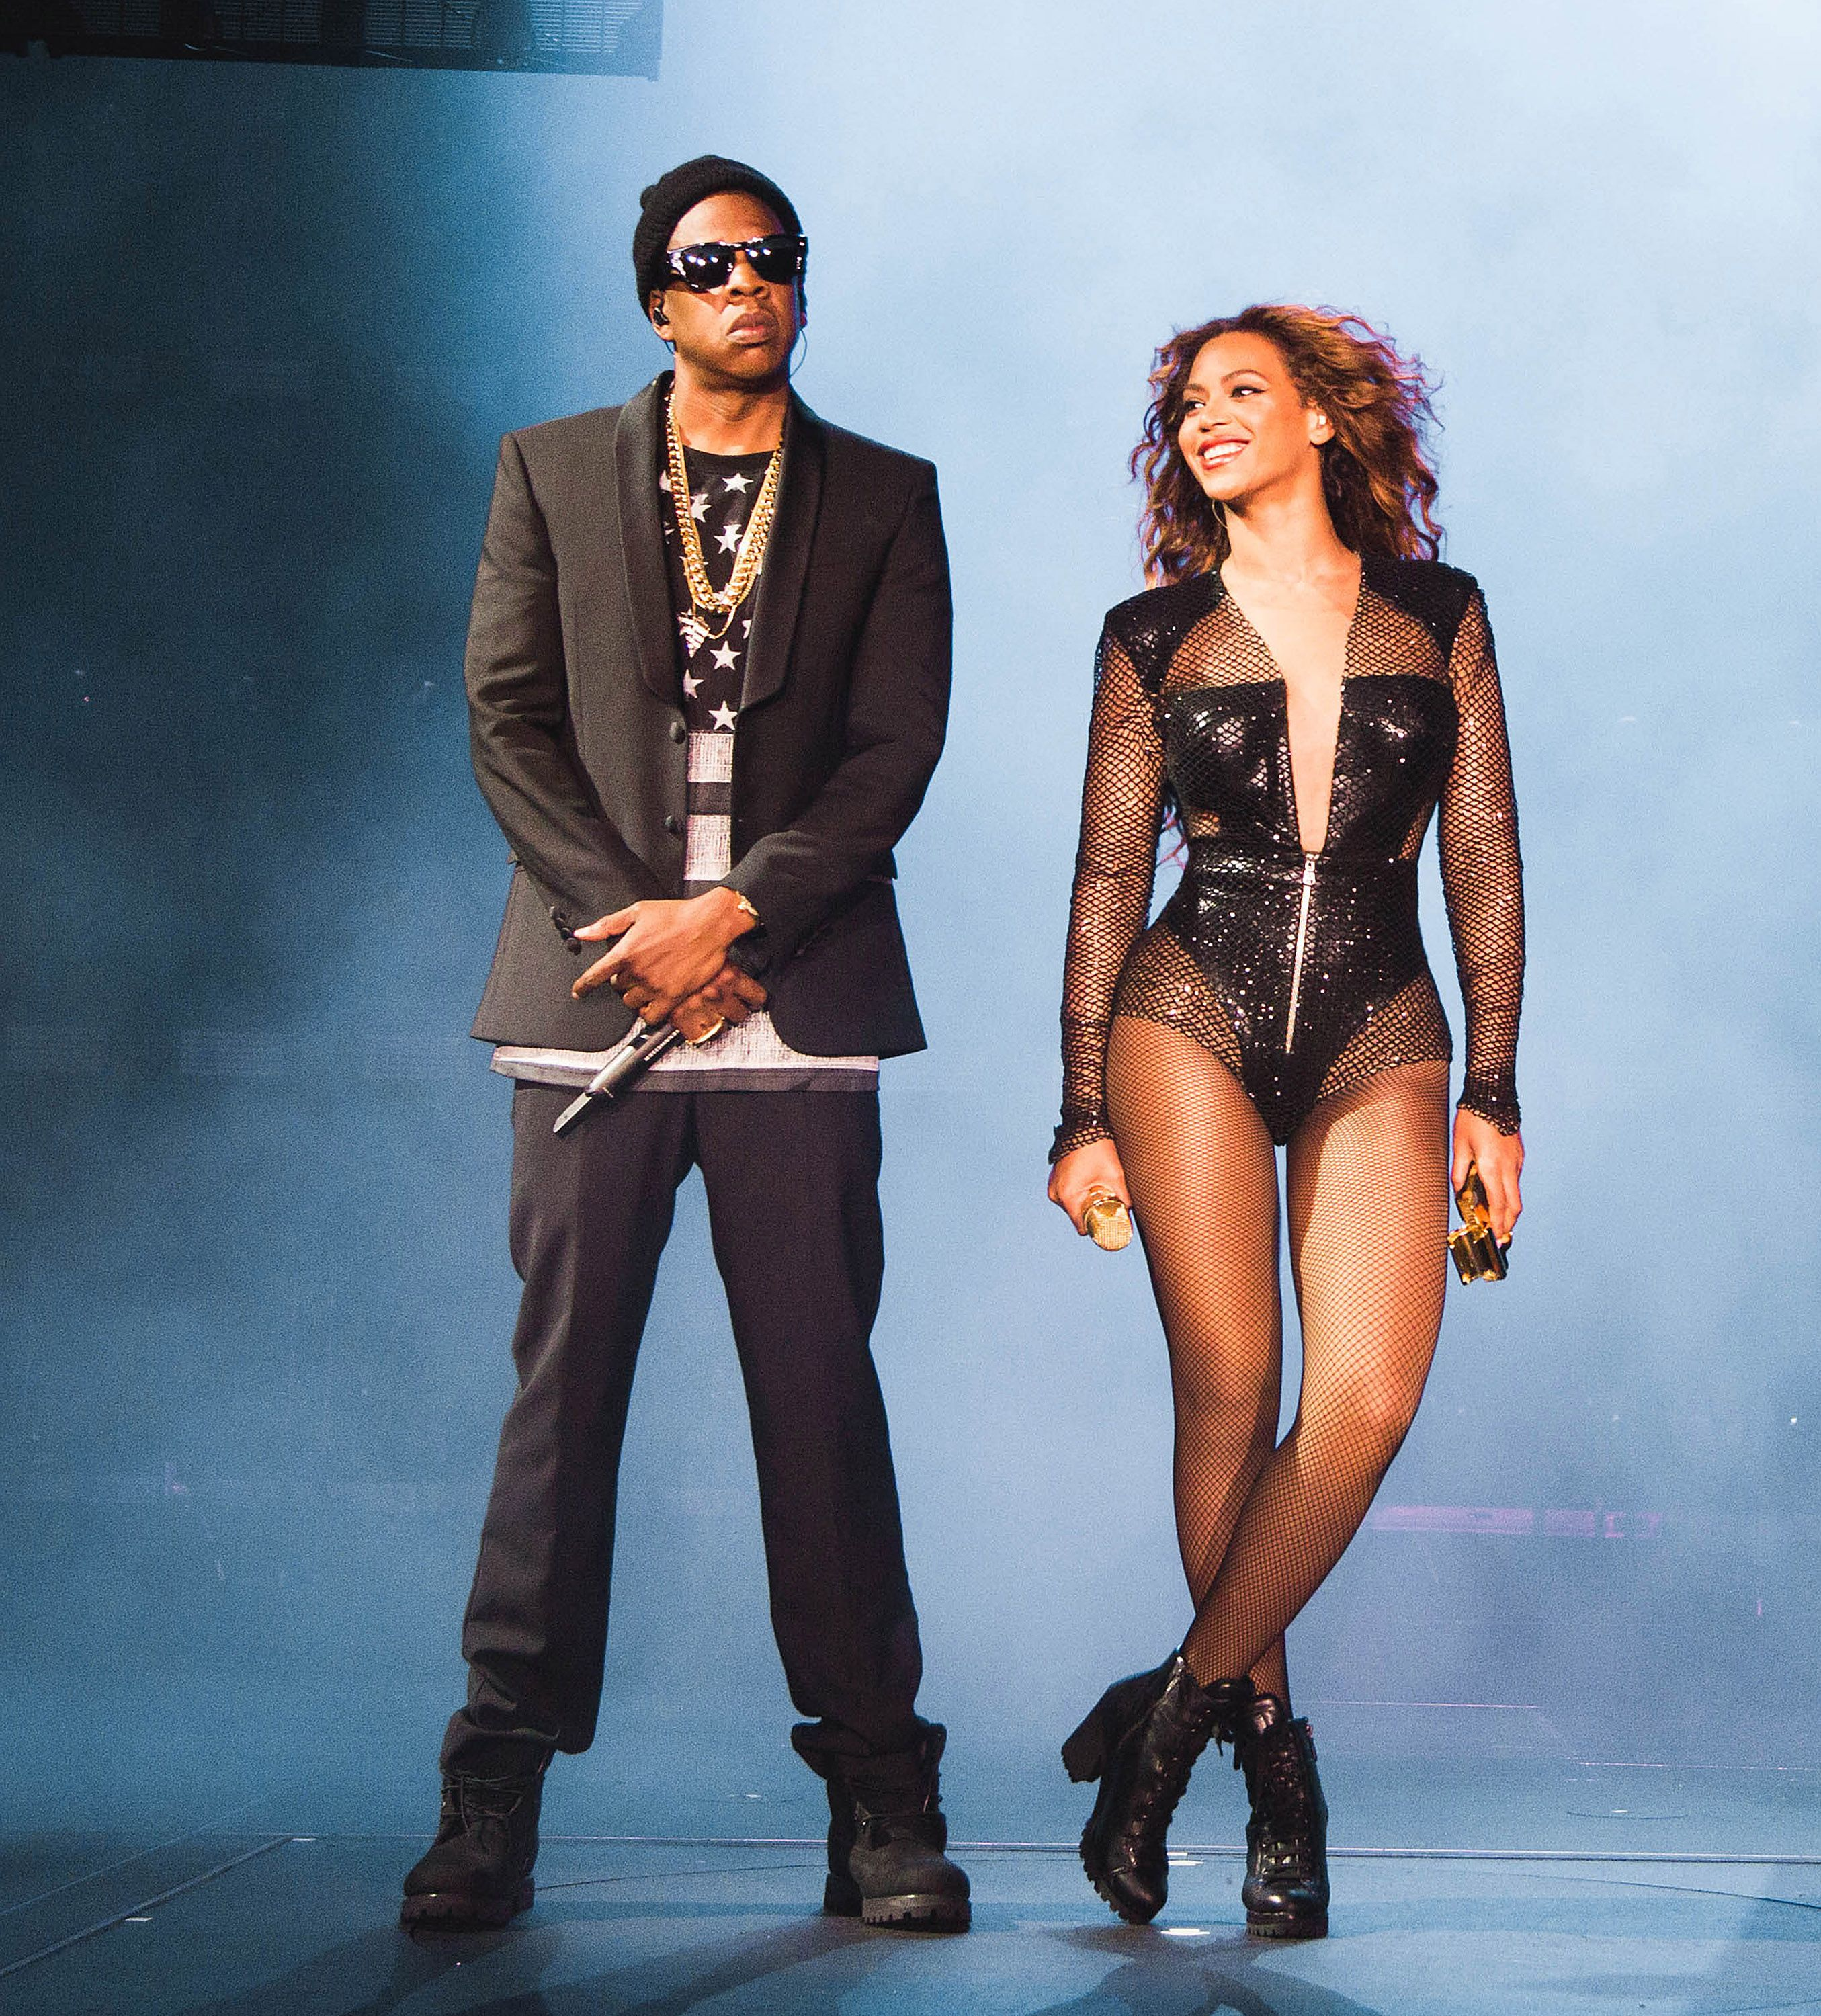 Beyonce and Jay Z on tour ap Hd Wallpapers 2710x3000